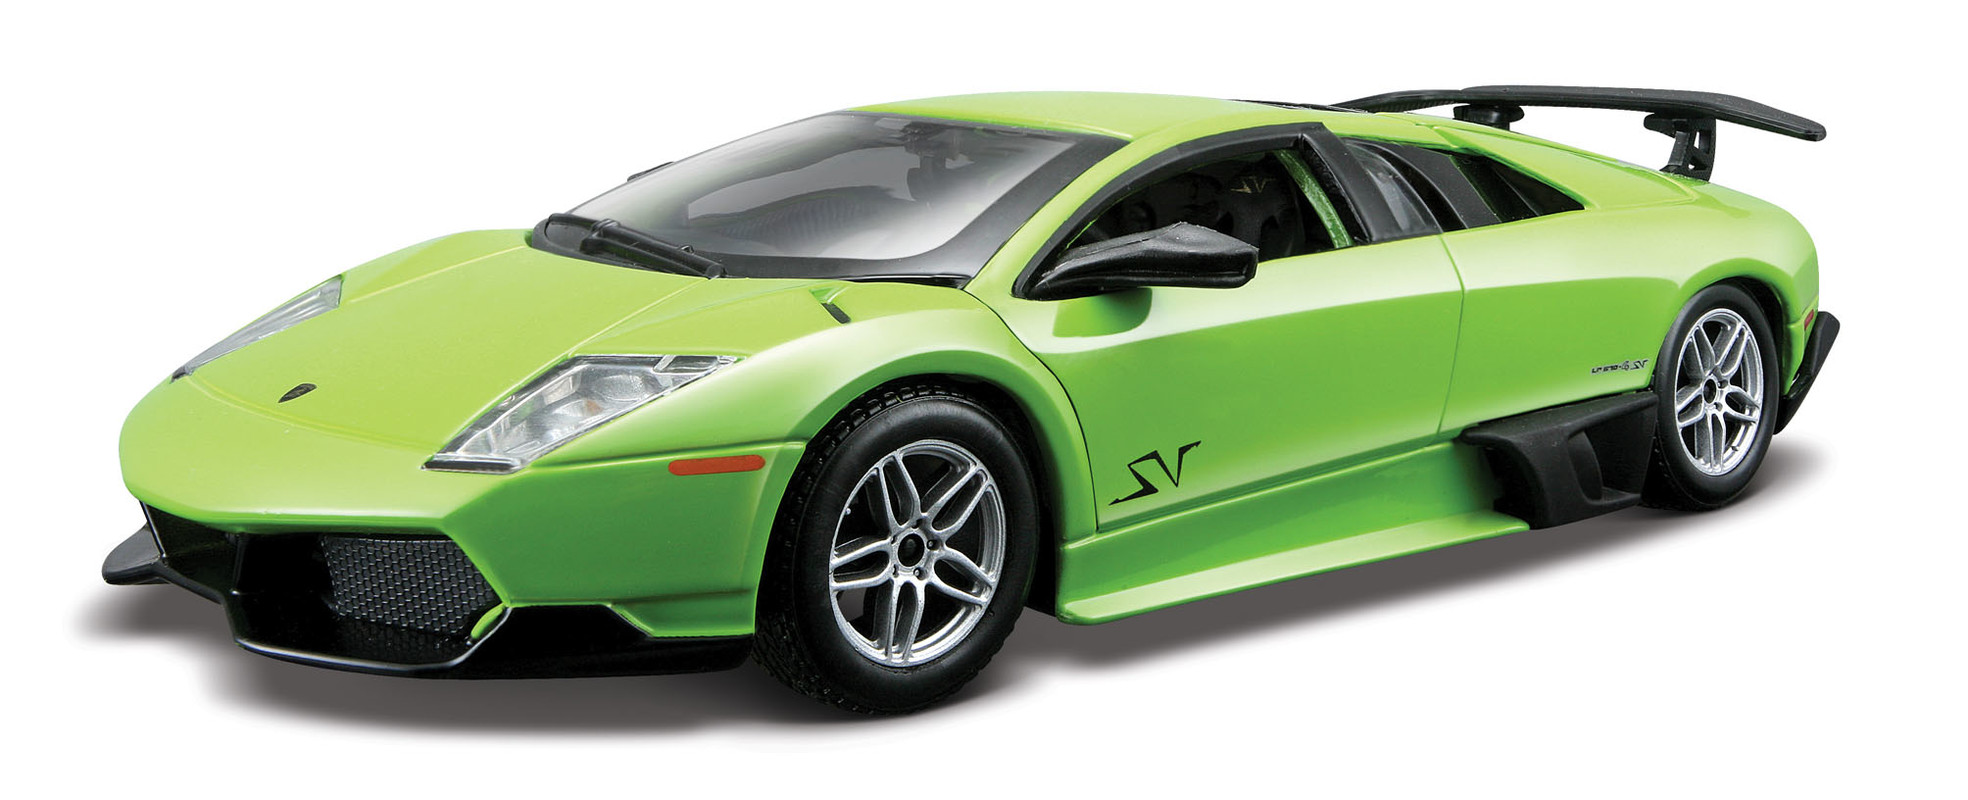 BBURAGO - Lamborghini Murciélago LP 670-4 SV KIT 1:24 Close Box